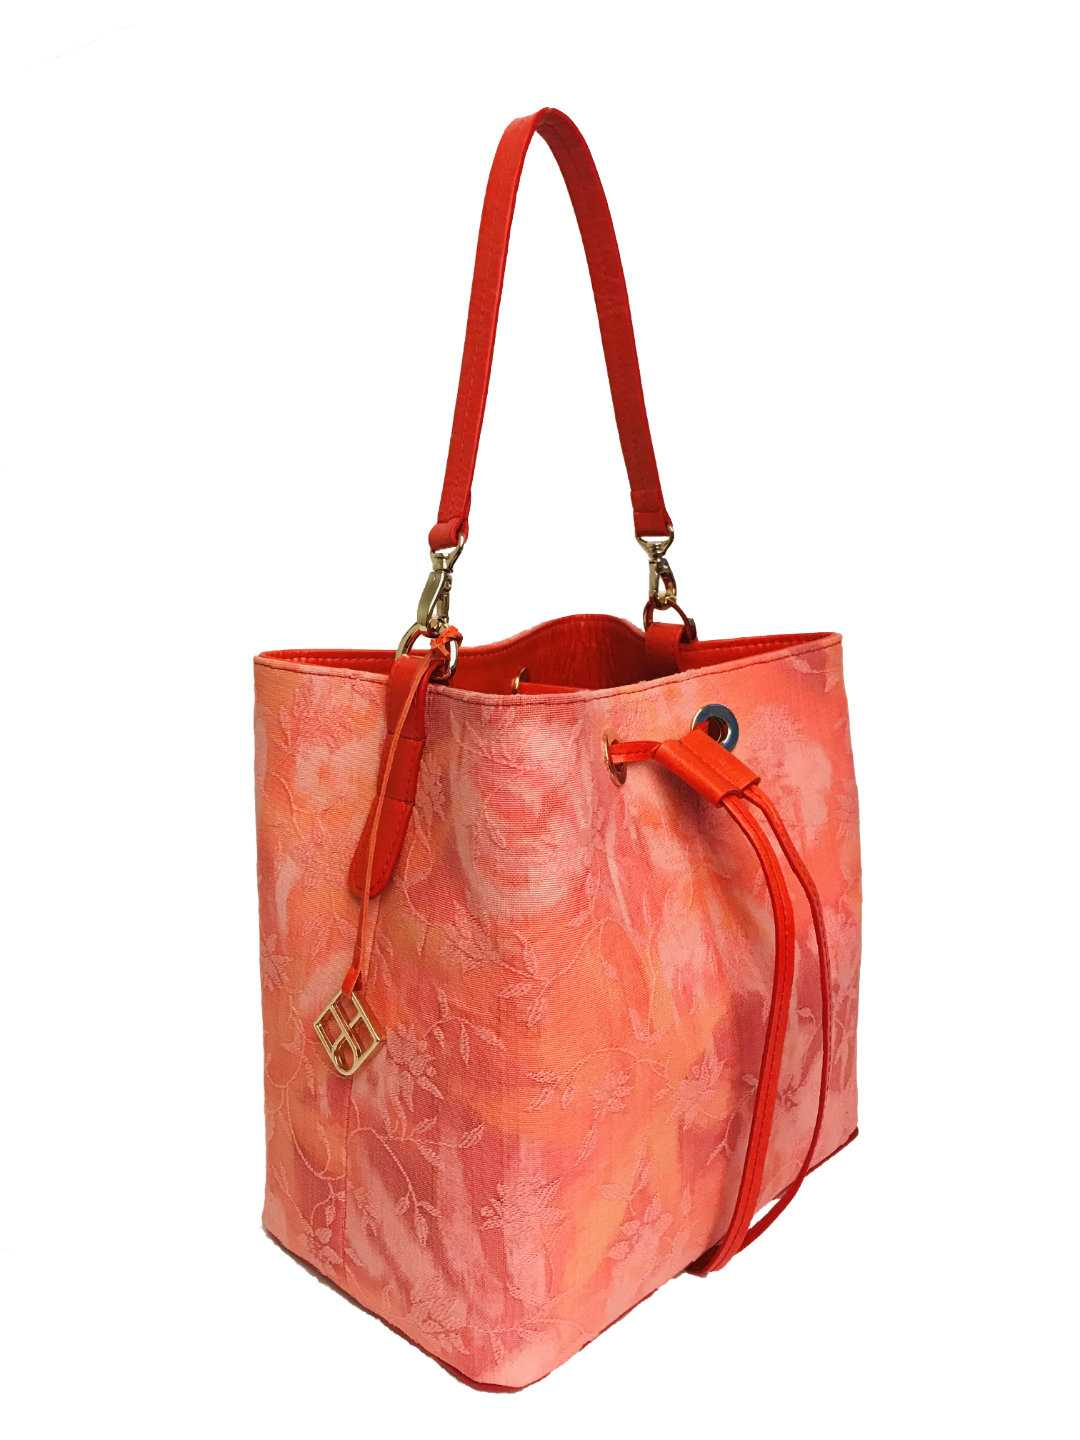 Alya Bucket Small Textile - coral, patterned